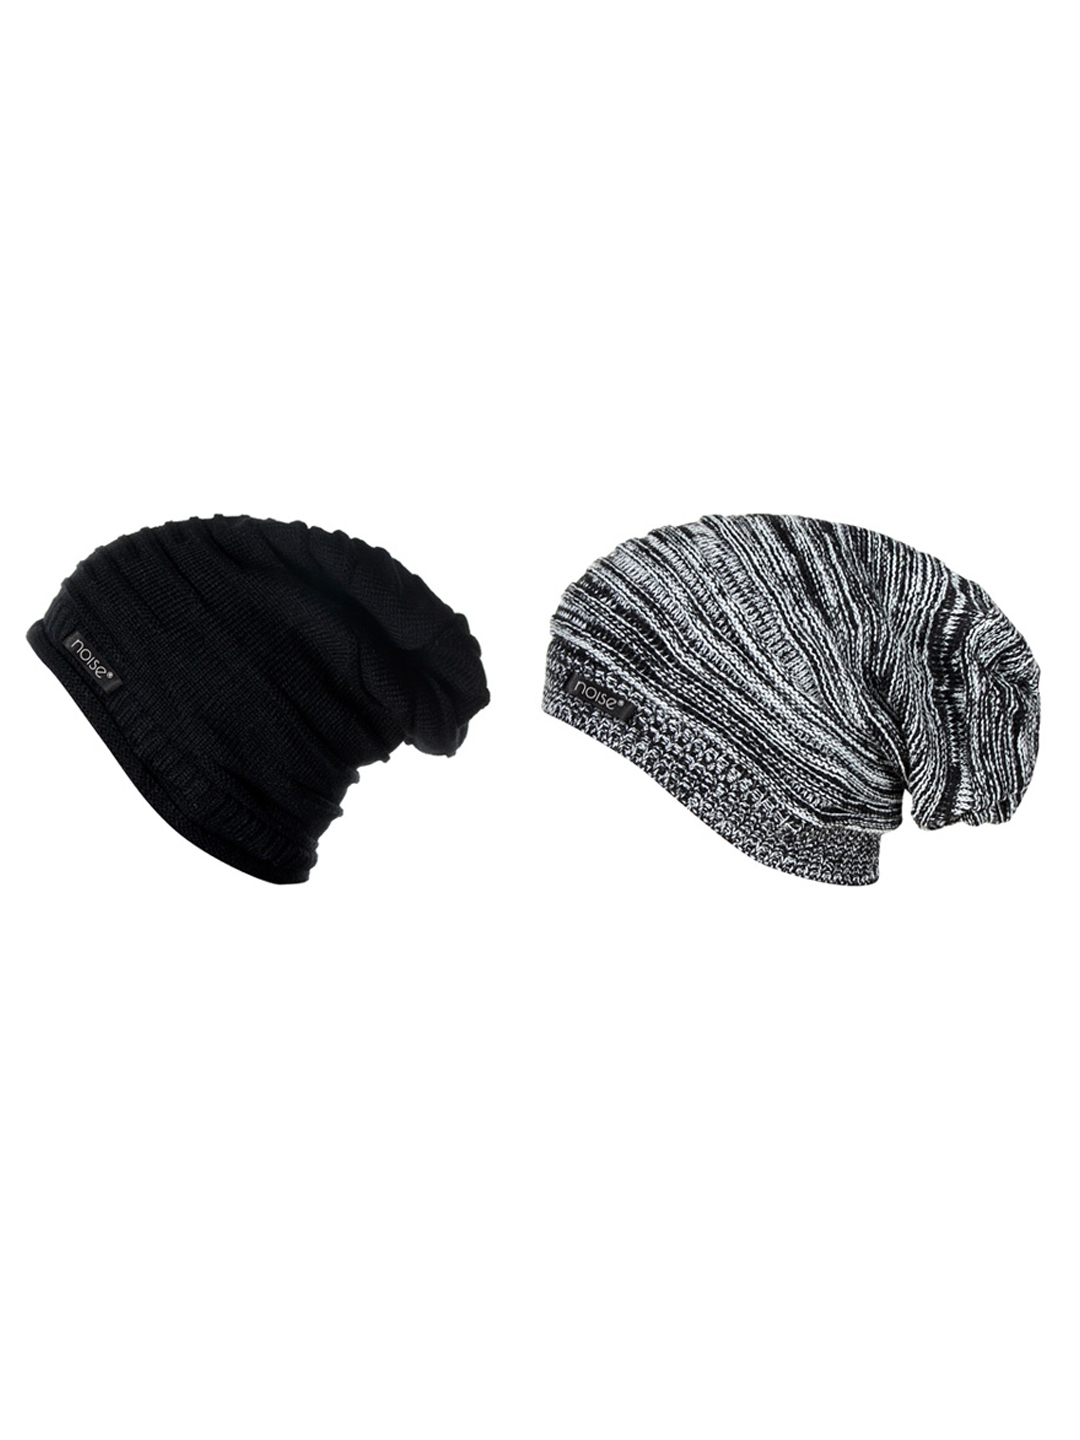 16604fa0e5b Buy NOISE Unisex Set Of 2 Beanies - Caps for Unisex 1573810